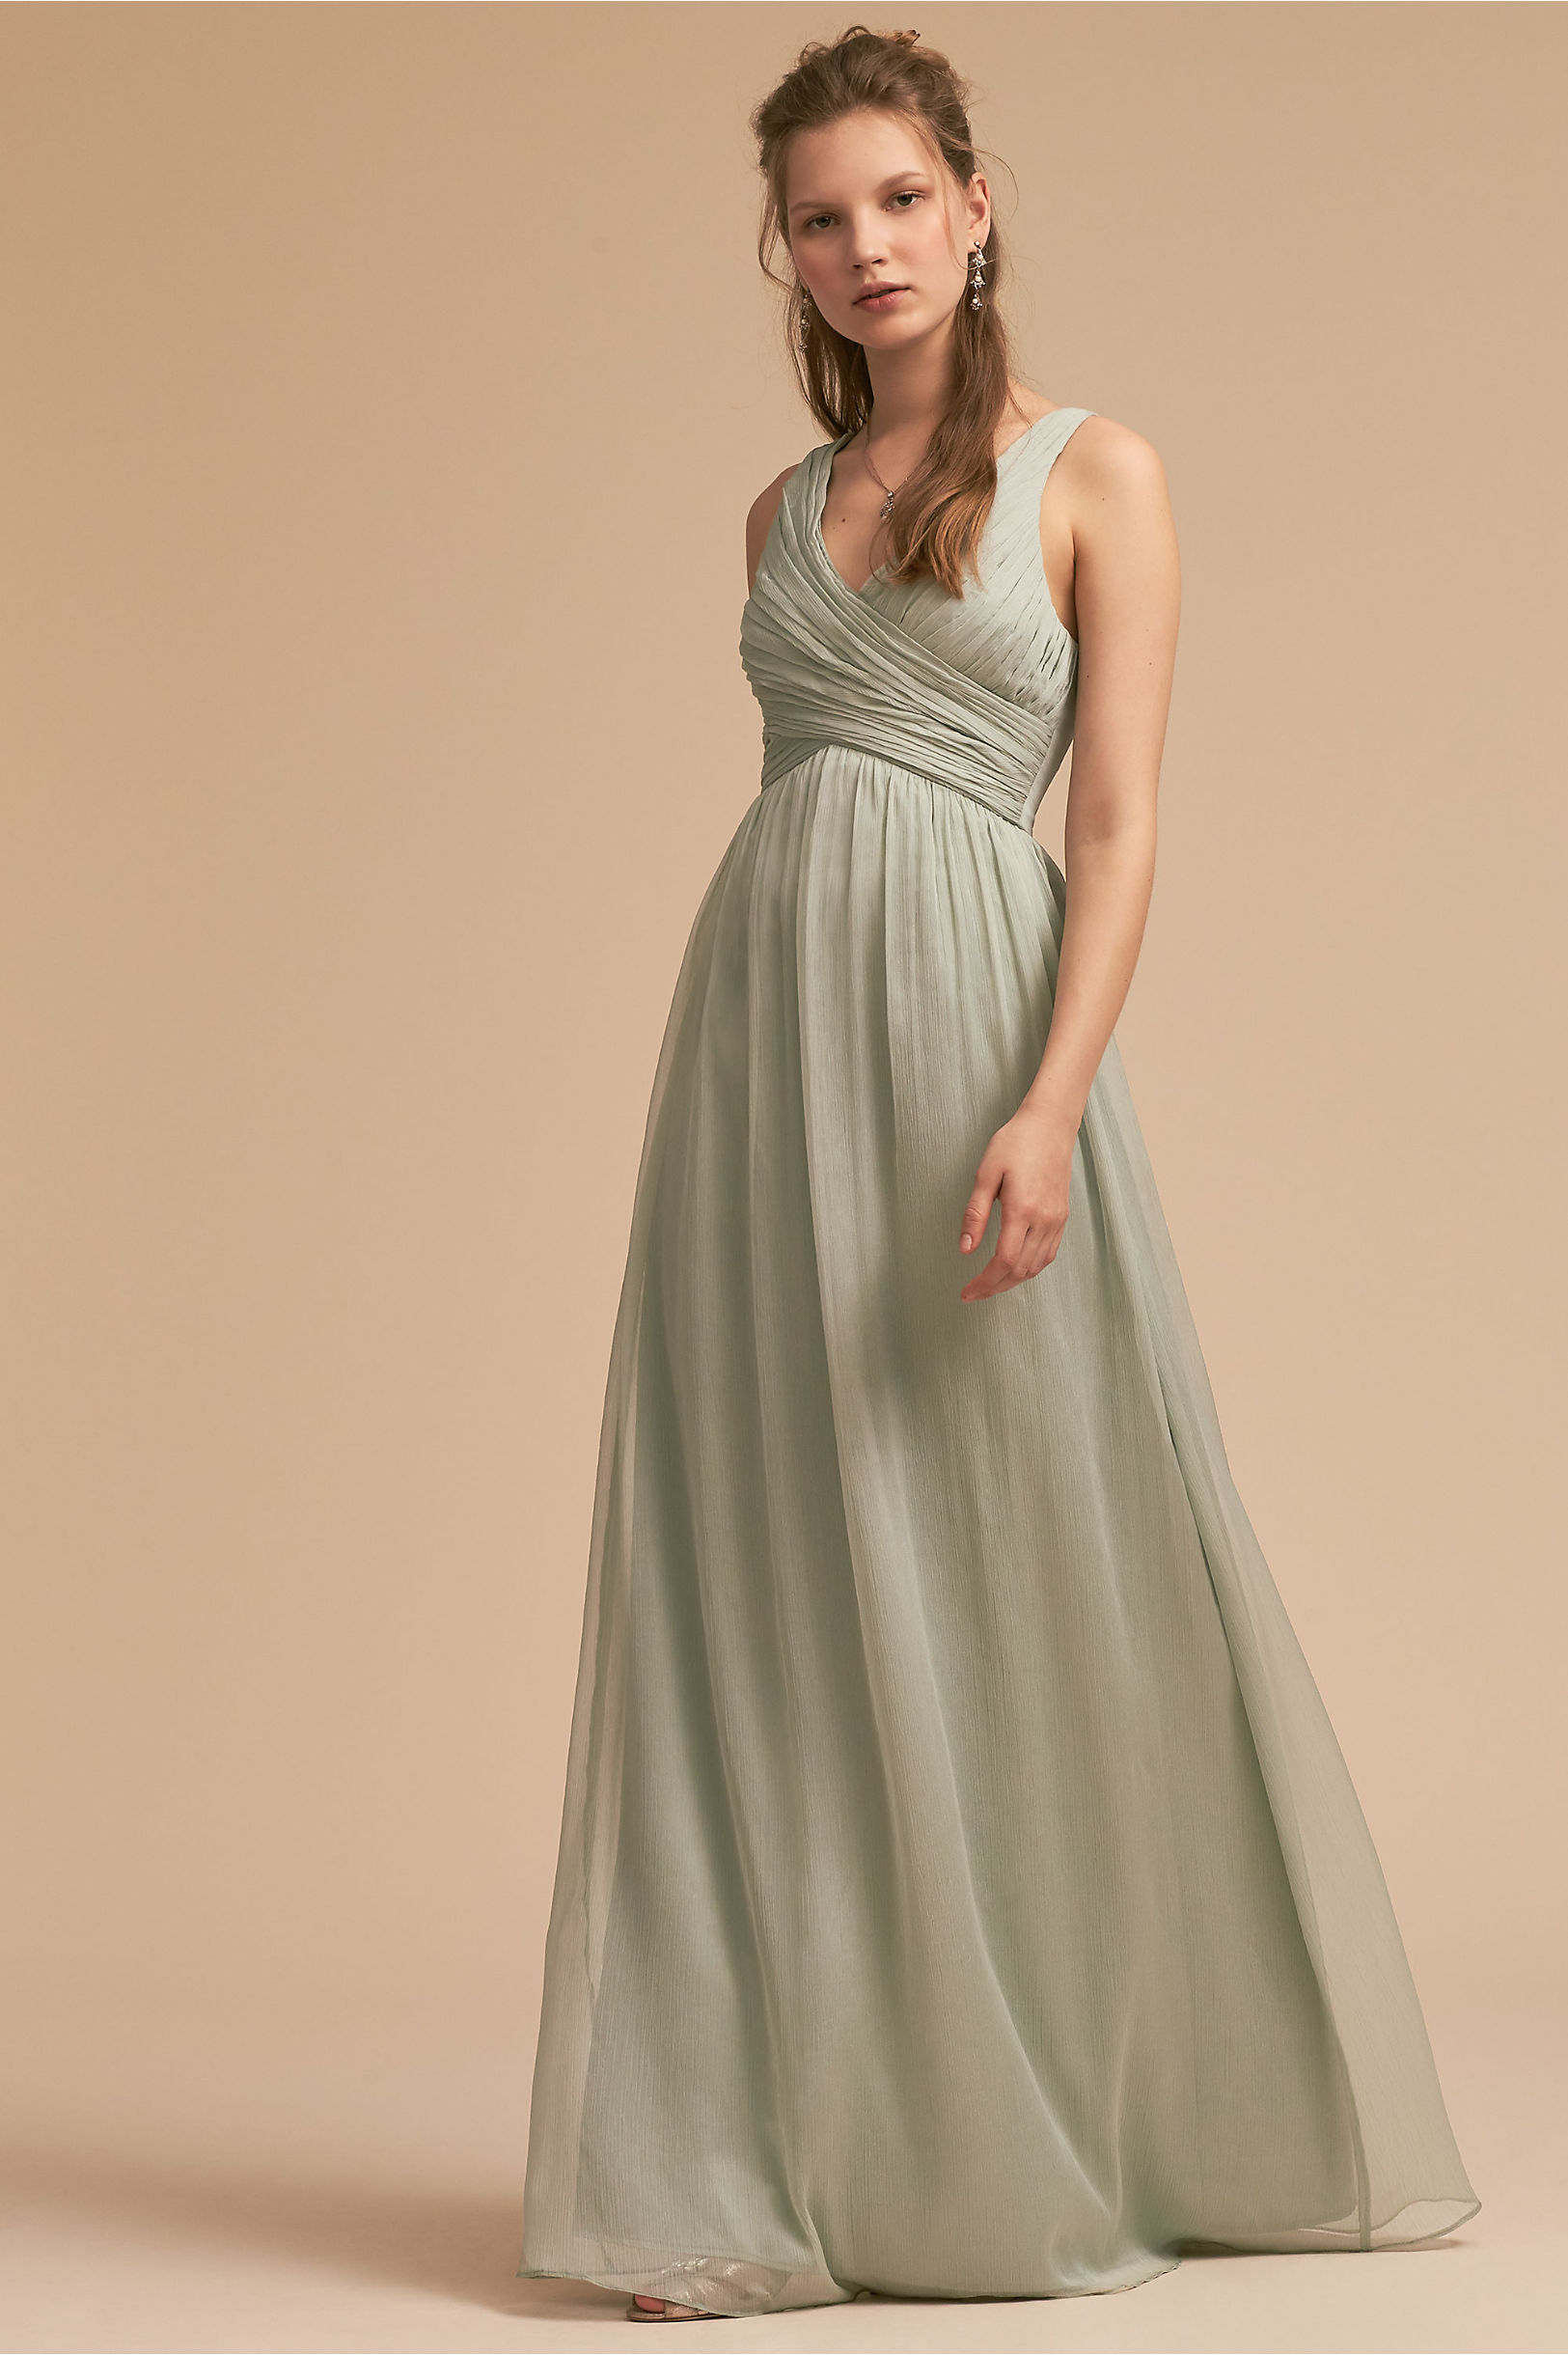 Affordable Bridesmaid Dresses Under 200 | BHLDN